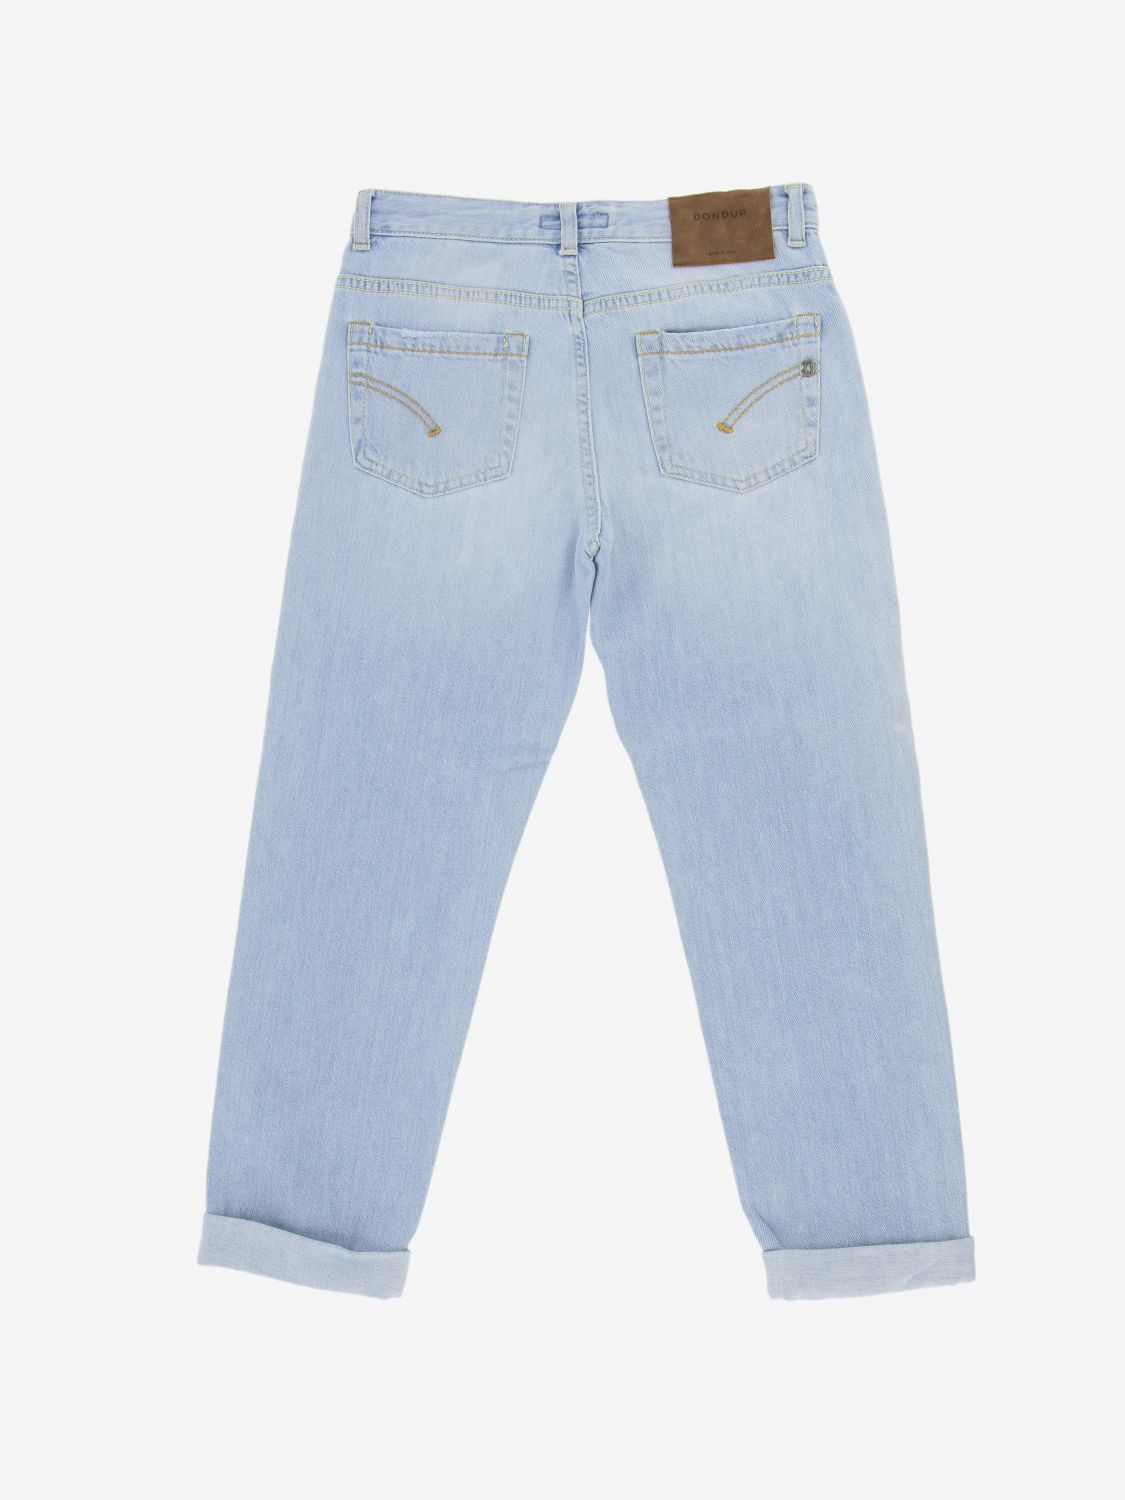 Jeans Dondup: Jeans Brighton Dondup con rotture sstb 2